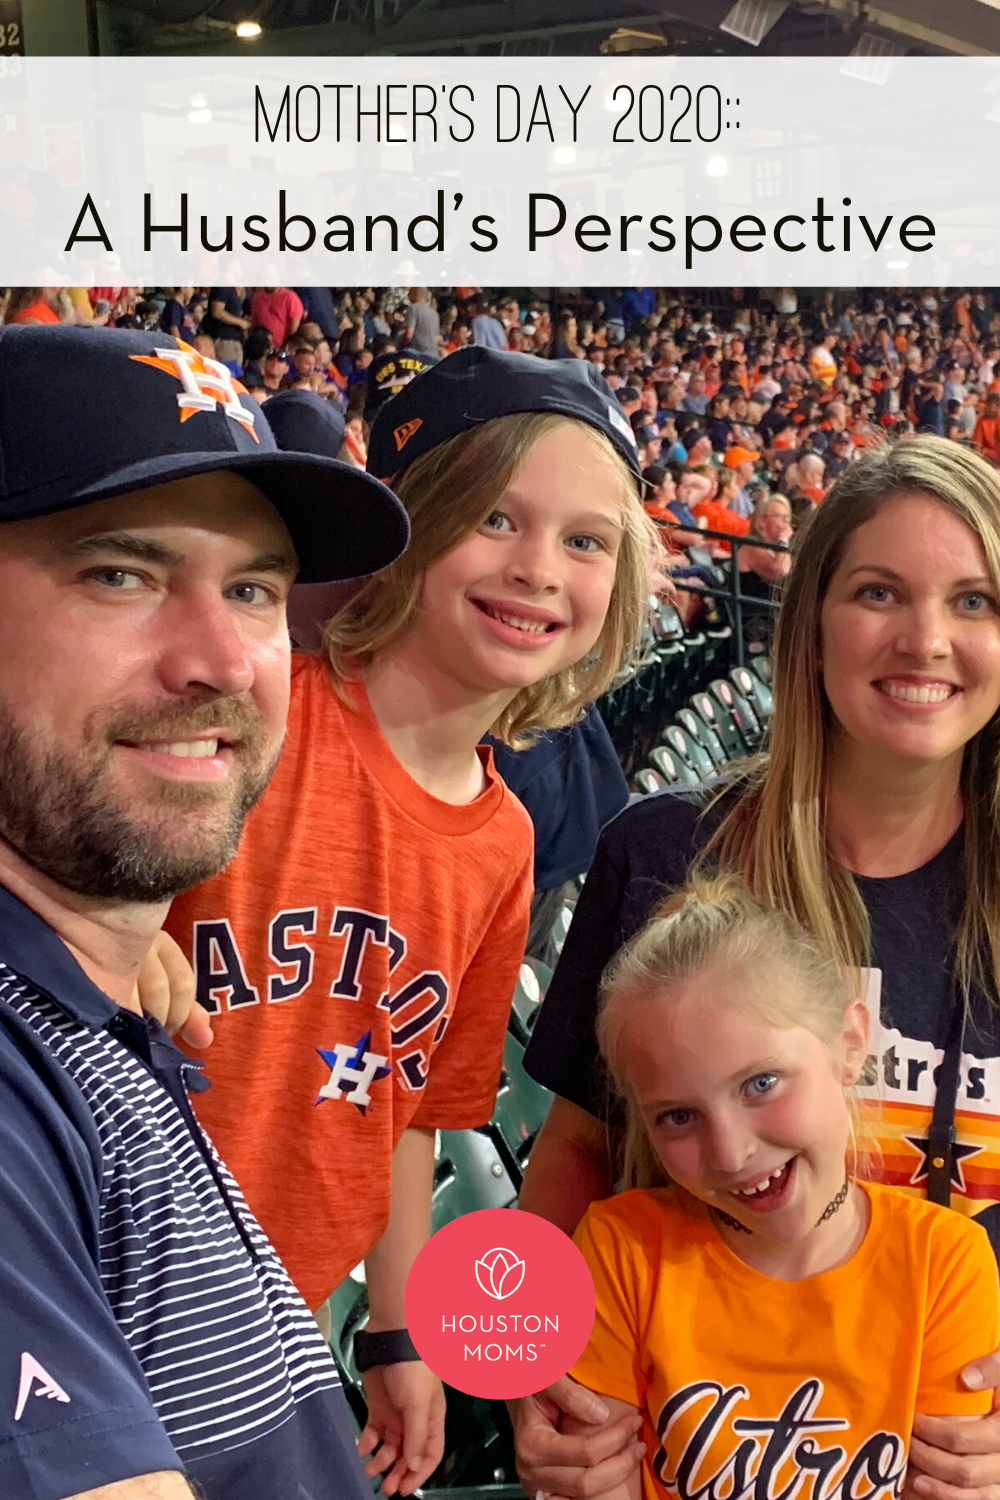 """Houston Moms """"Mother's Day 2020:: A Husband's Perspective"""" #houstonmoms #houstonmomsblog #momsaroundhouston"""